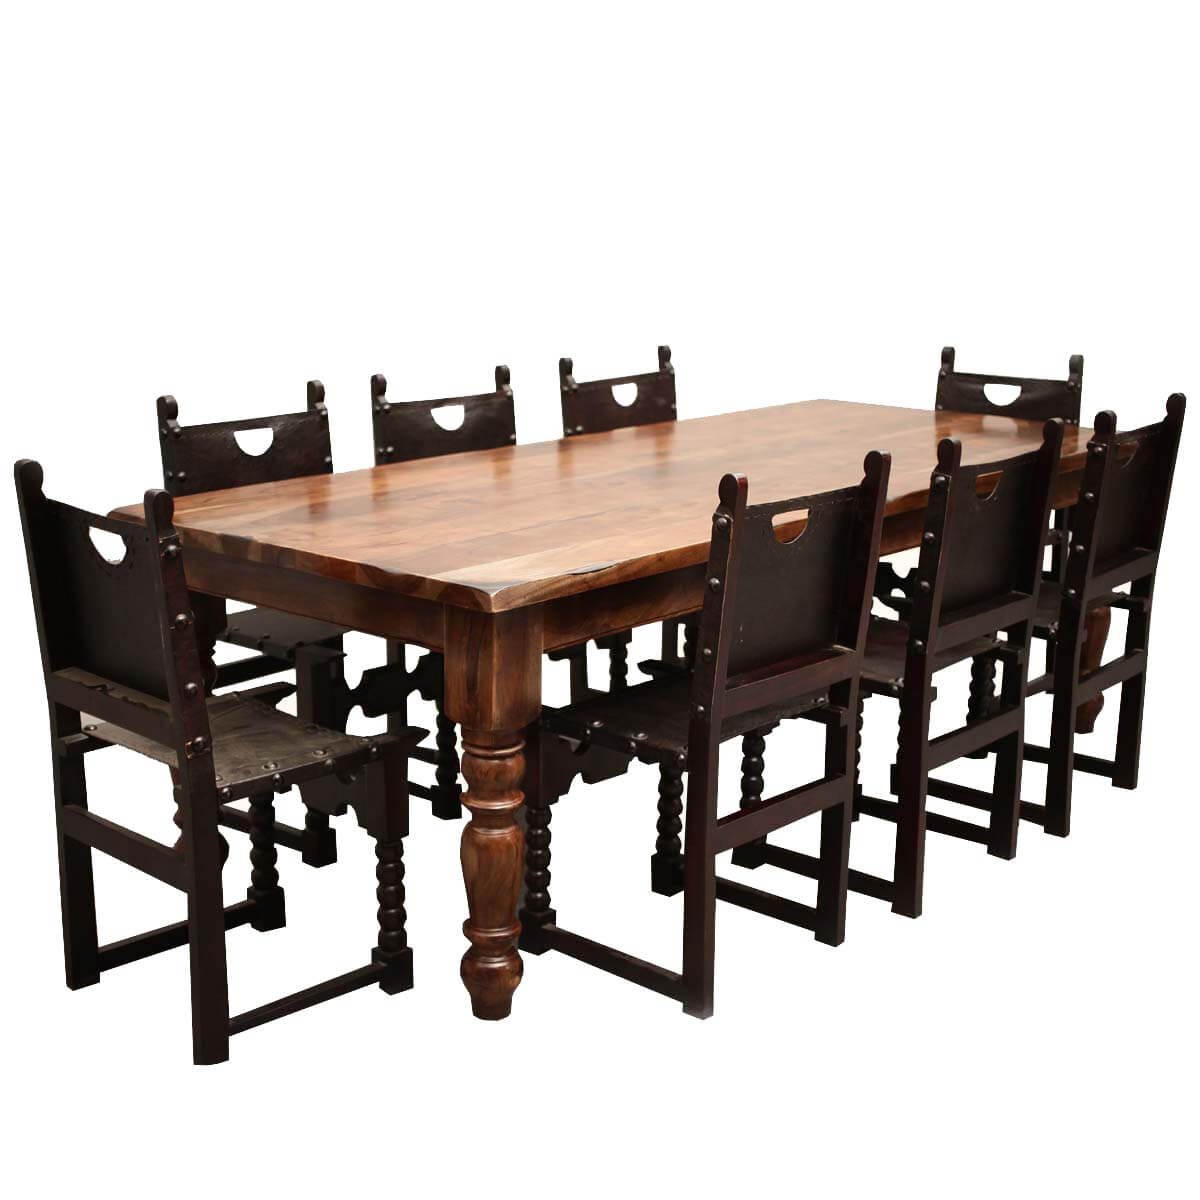 Classic Rustic Acacia U0026 Leather Dining Table Chair Set